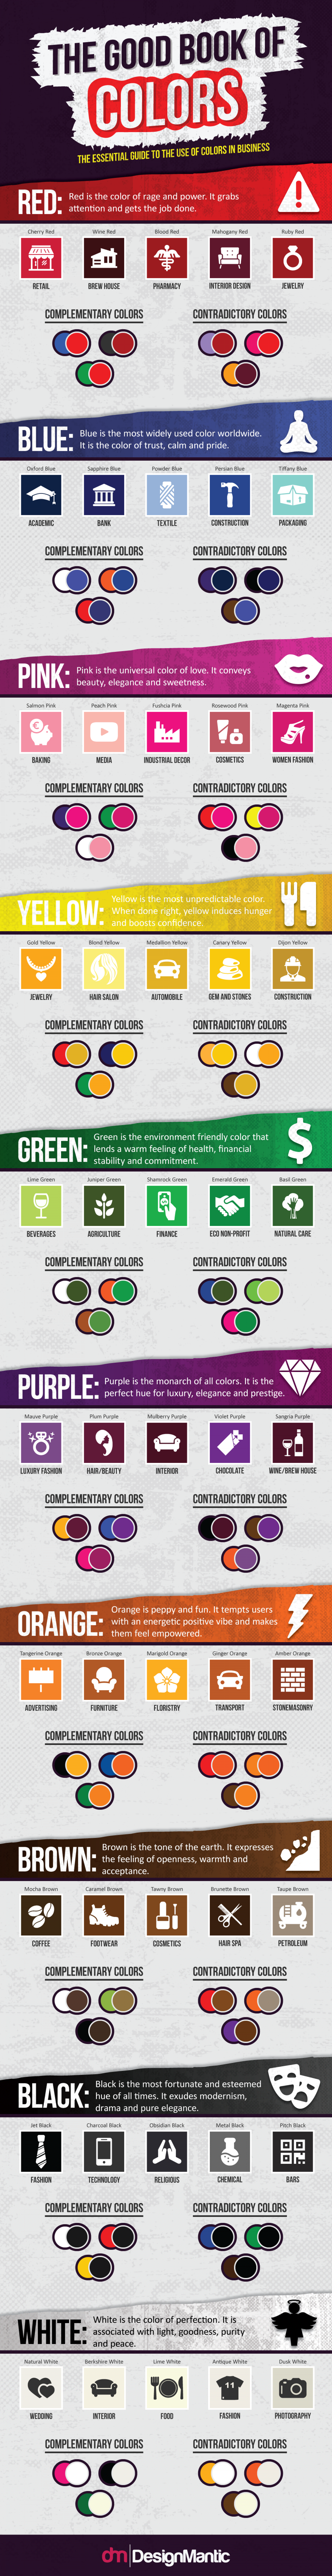 The Good Book Of Colors: The Essential Guide For Business! Infographic